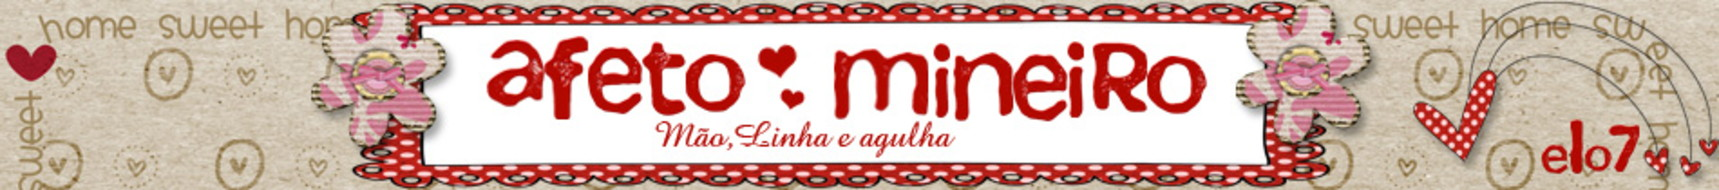 Afeto Mineiro